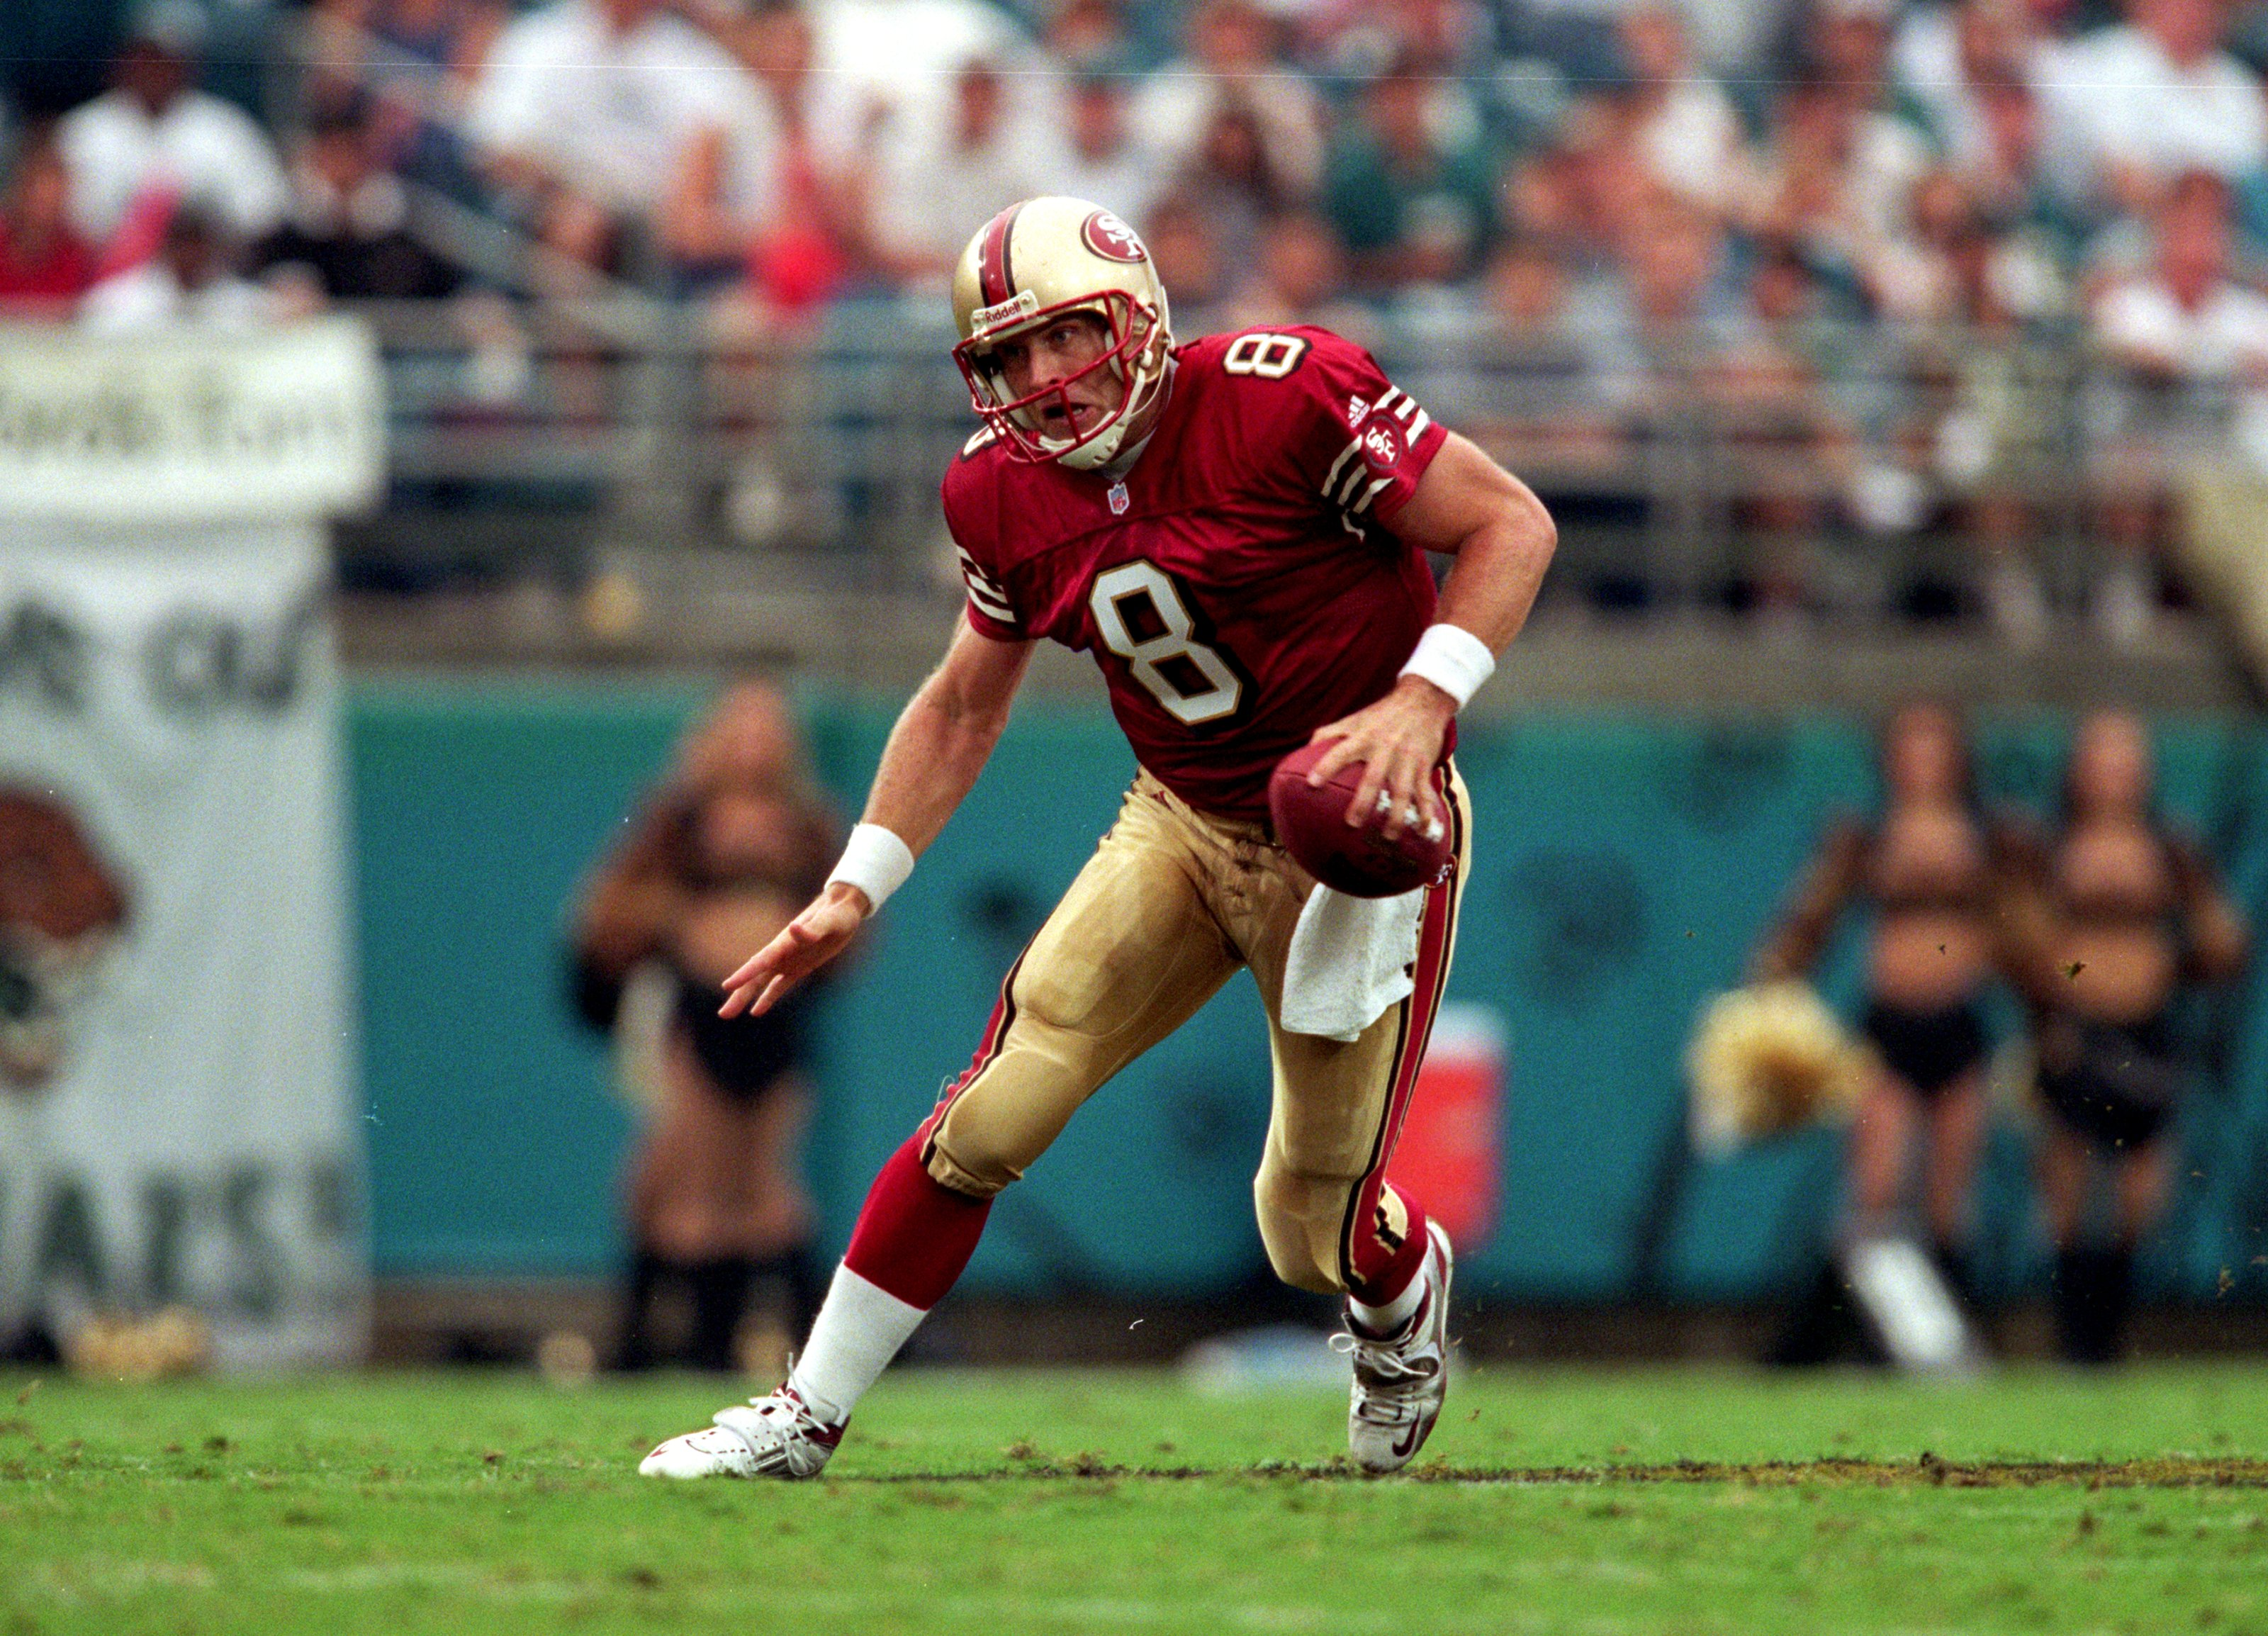 12 Sep 1999:  Steve Young #8 of the San Francisco 49ers moves with the ball during the game against the Jacksonville Jaguars at the Alltell Stadium in Jacksonville, Florida. The Jaguars defeated the 49ers 41-3. Mandatory Credit: Andy Lyons  /Allsport